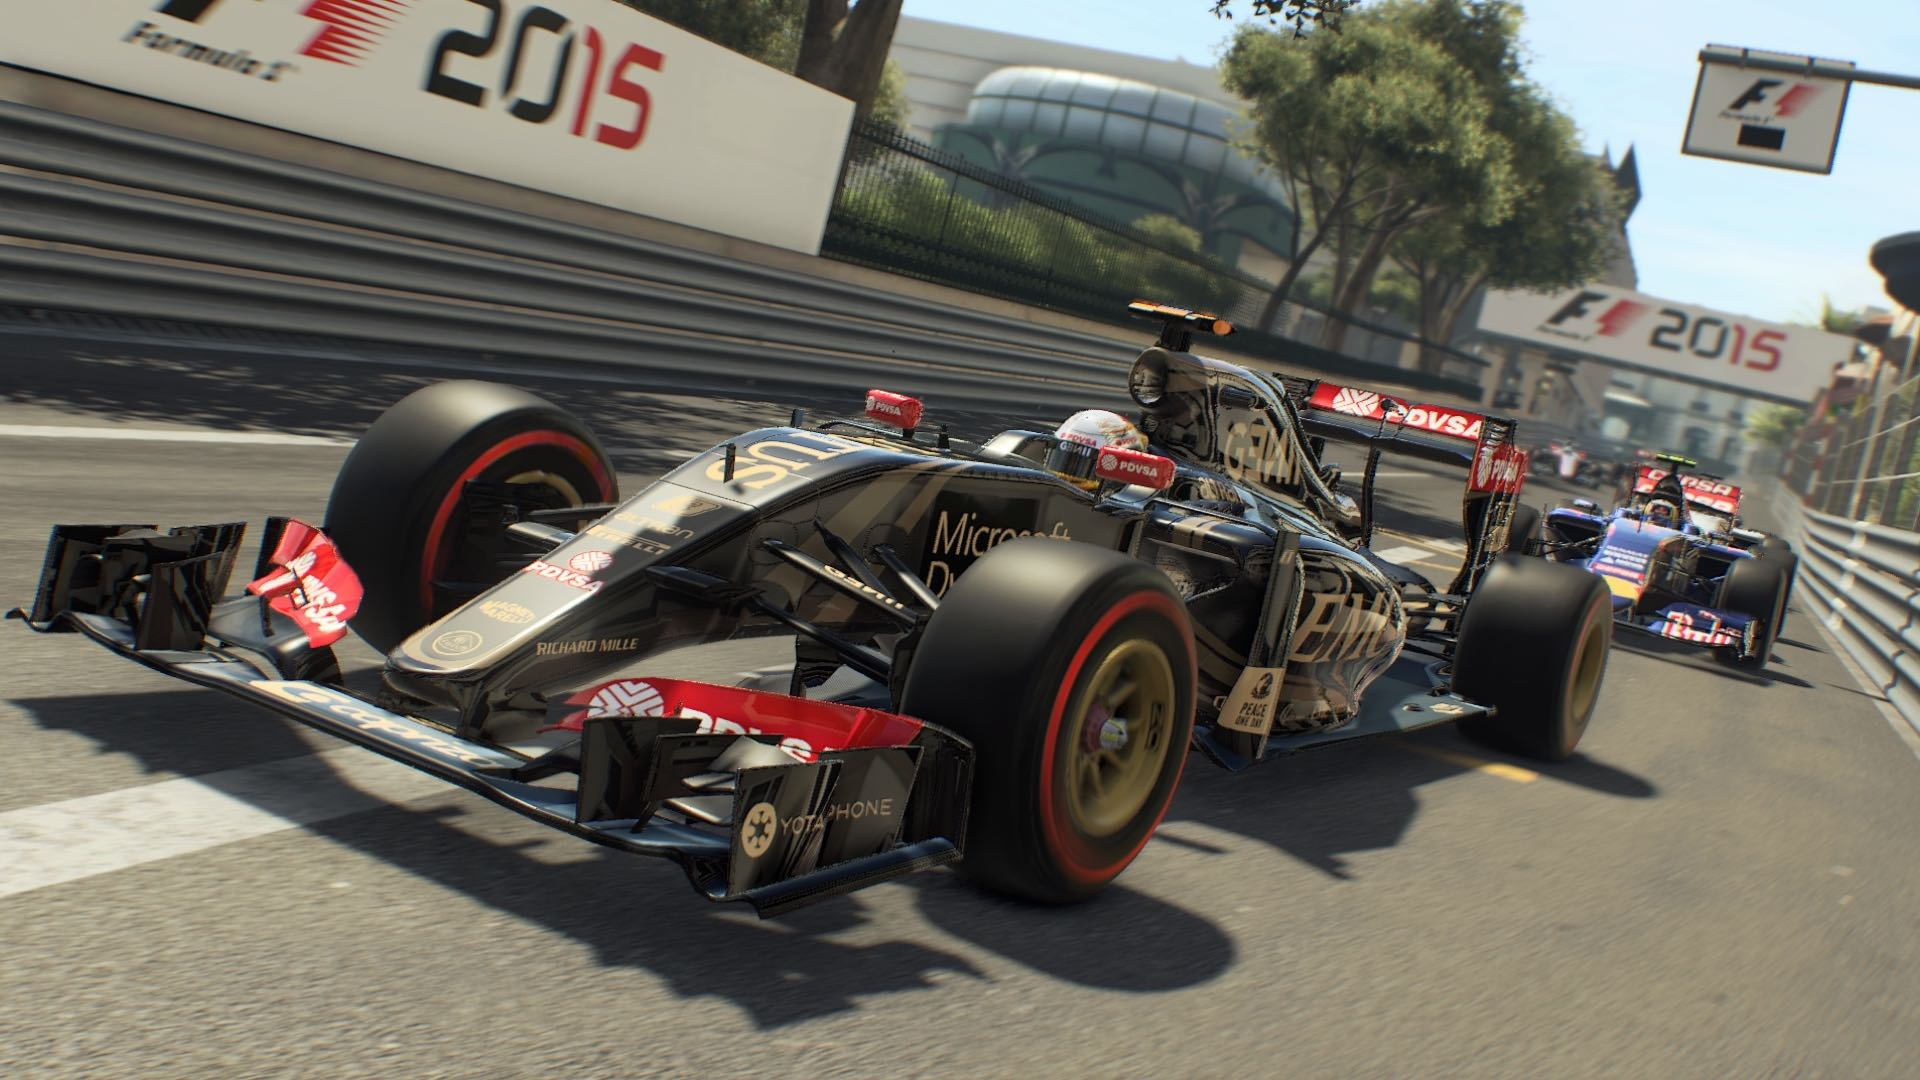 F1 2015 Teaser Trailer and Release Date | Gaming | LW Mag